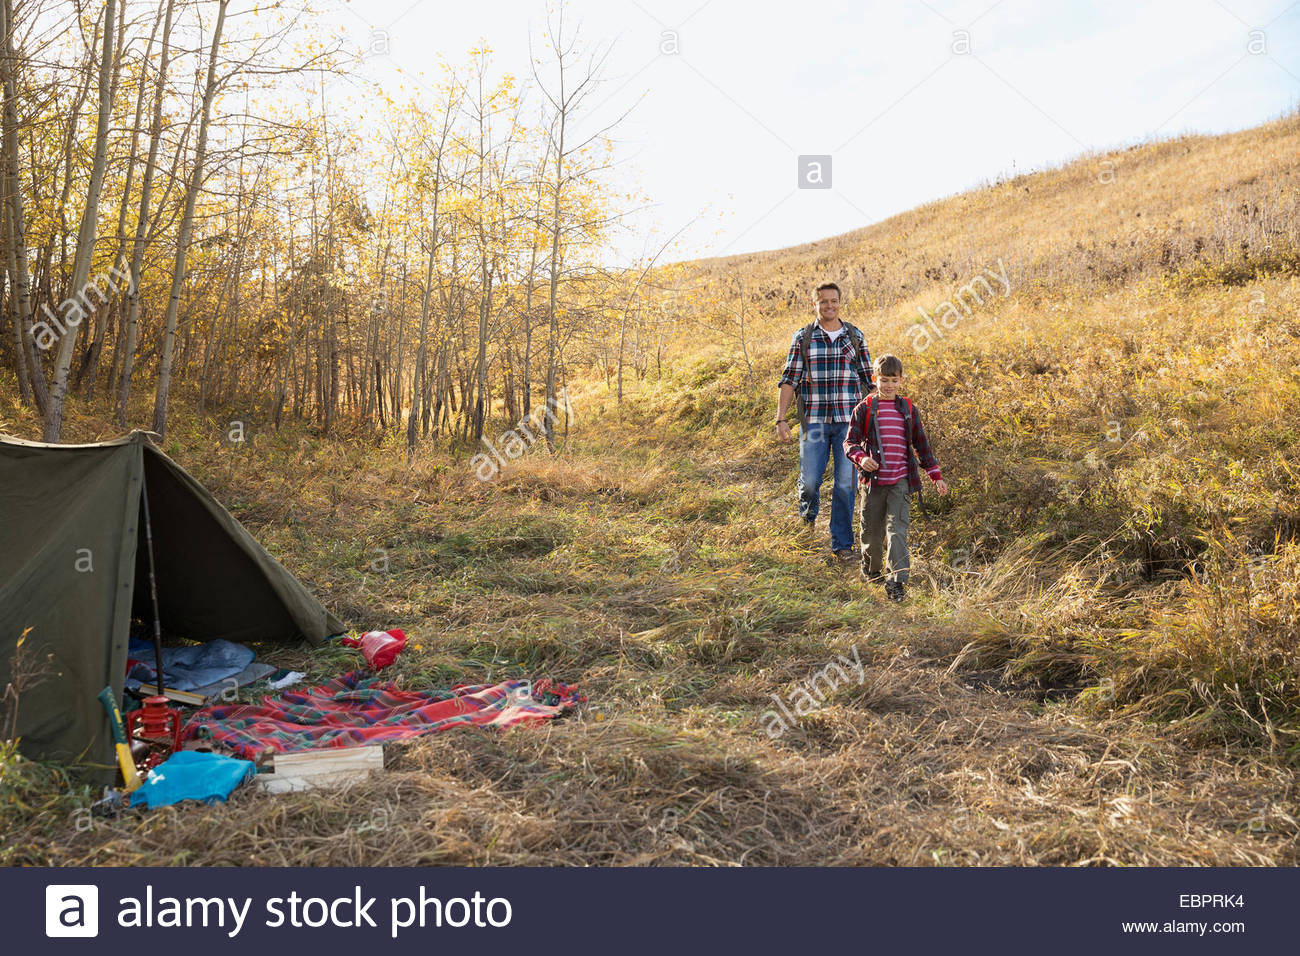 Father and son nearing tent at campsite - Stock Image